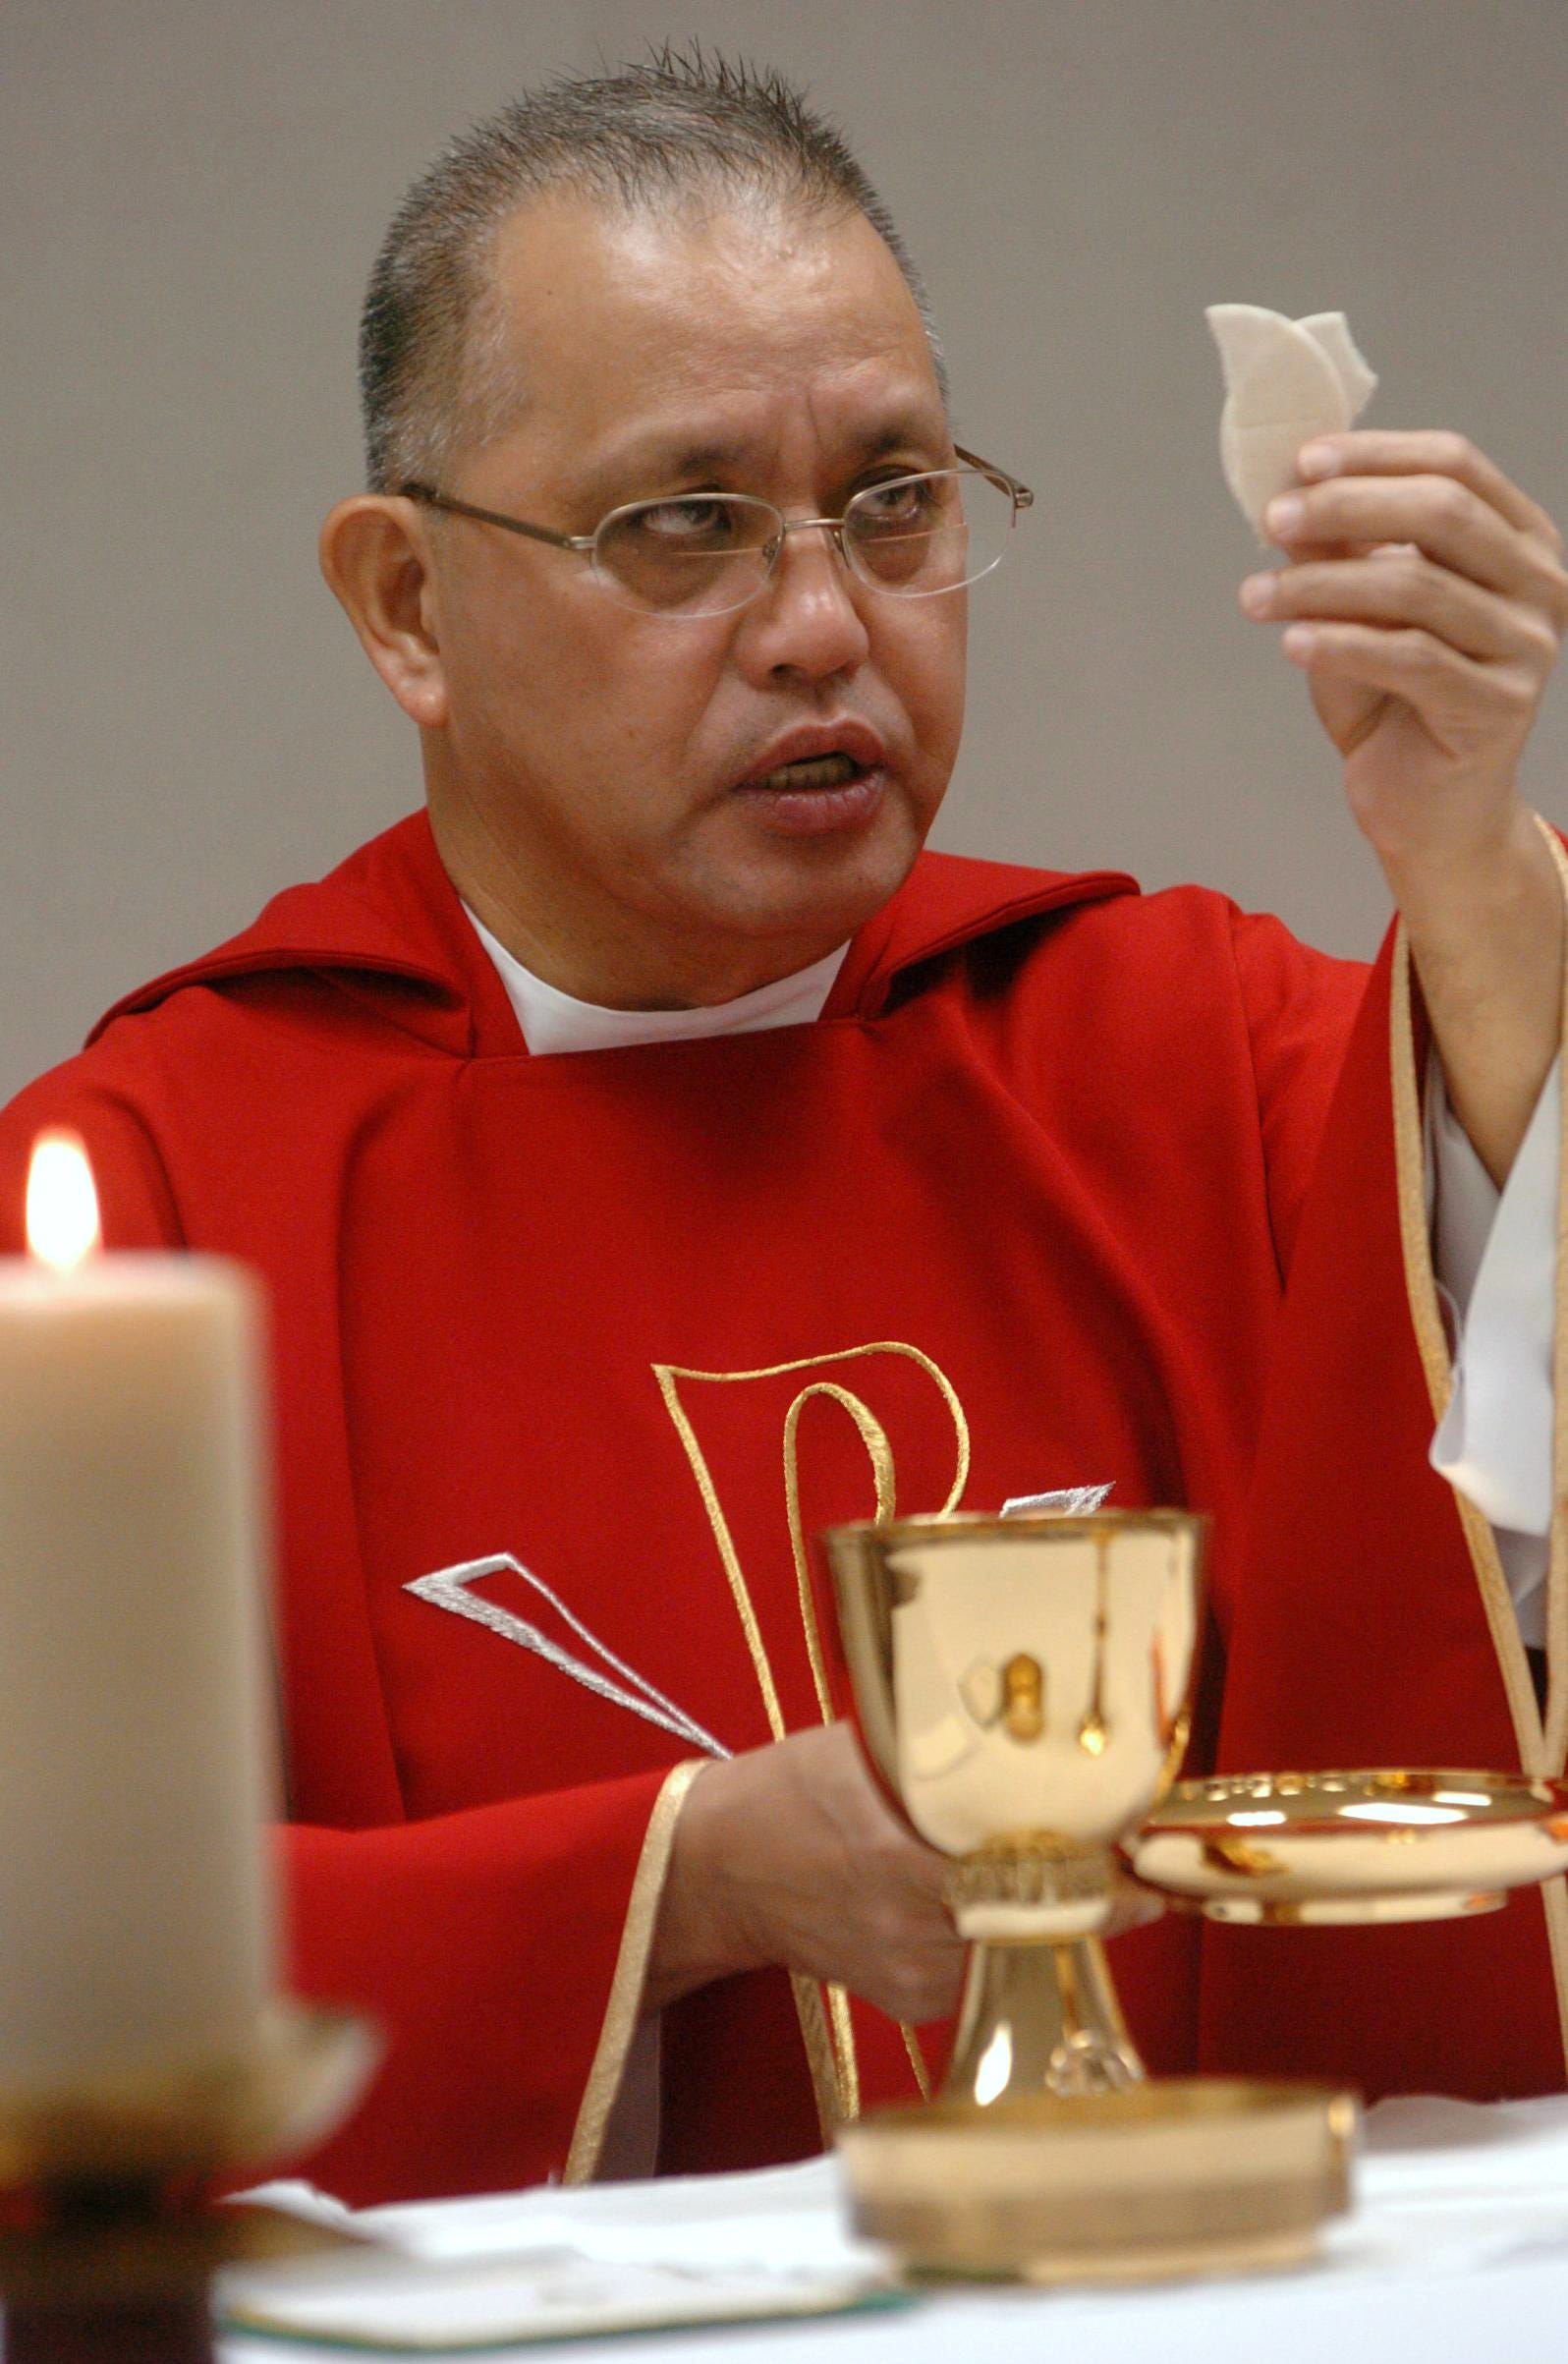 Dallas priest goes missing after 'credible' sexual-abuse allegations, bishop says